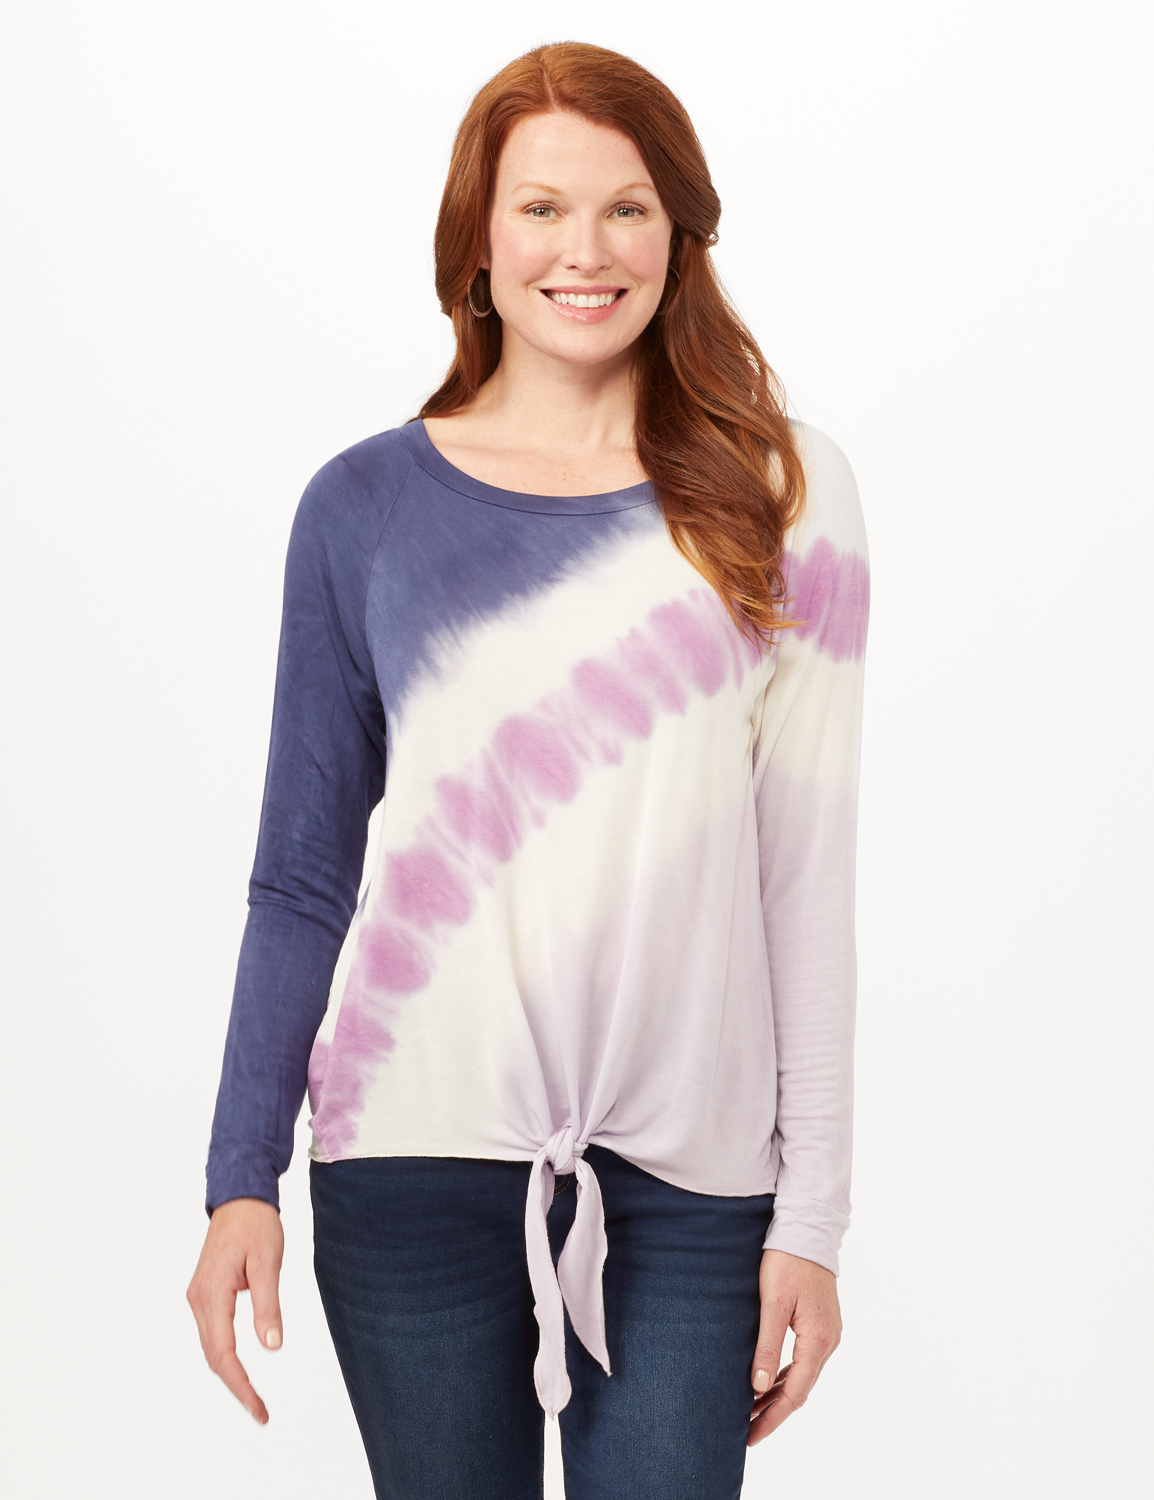 Long Sleeve Tie Dye Tie Front Knit Top - Blue/Lilac/White - Front